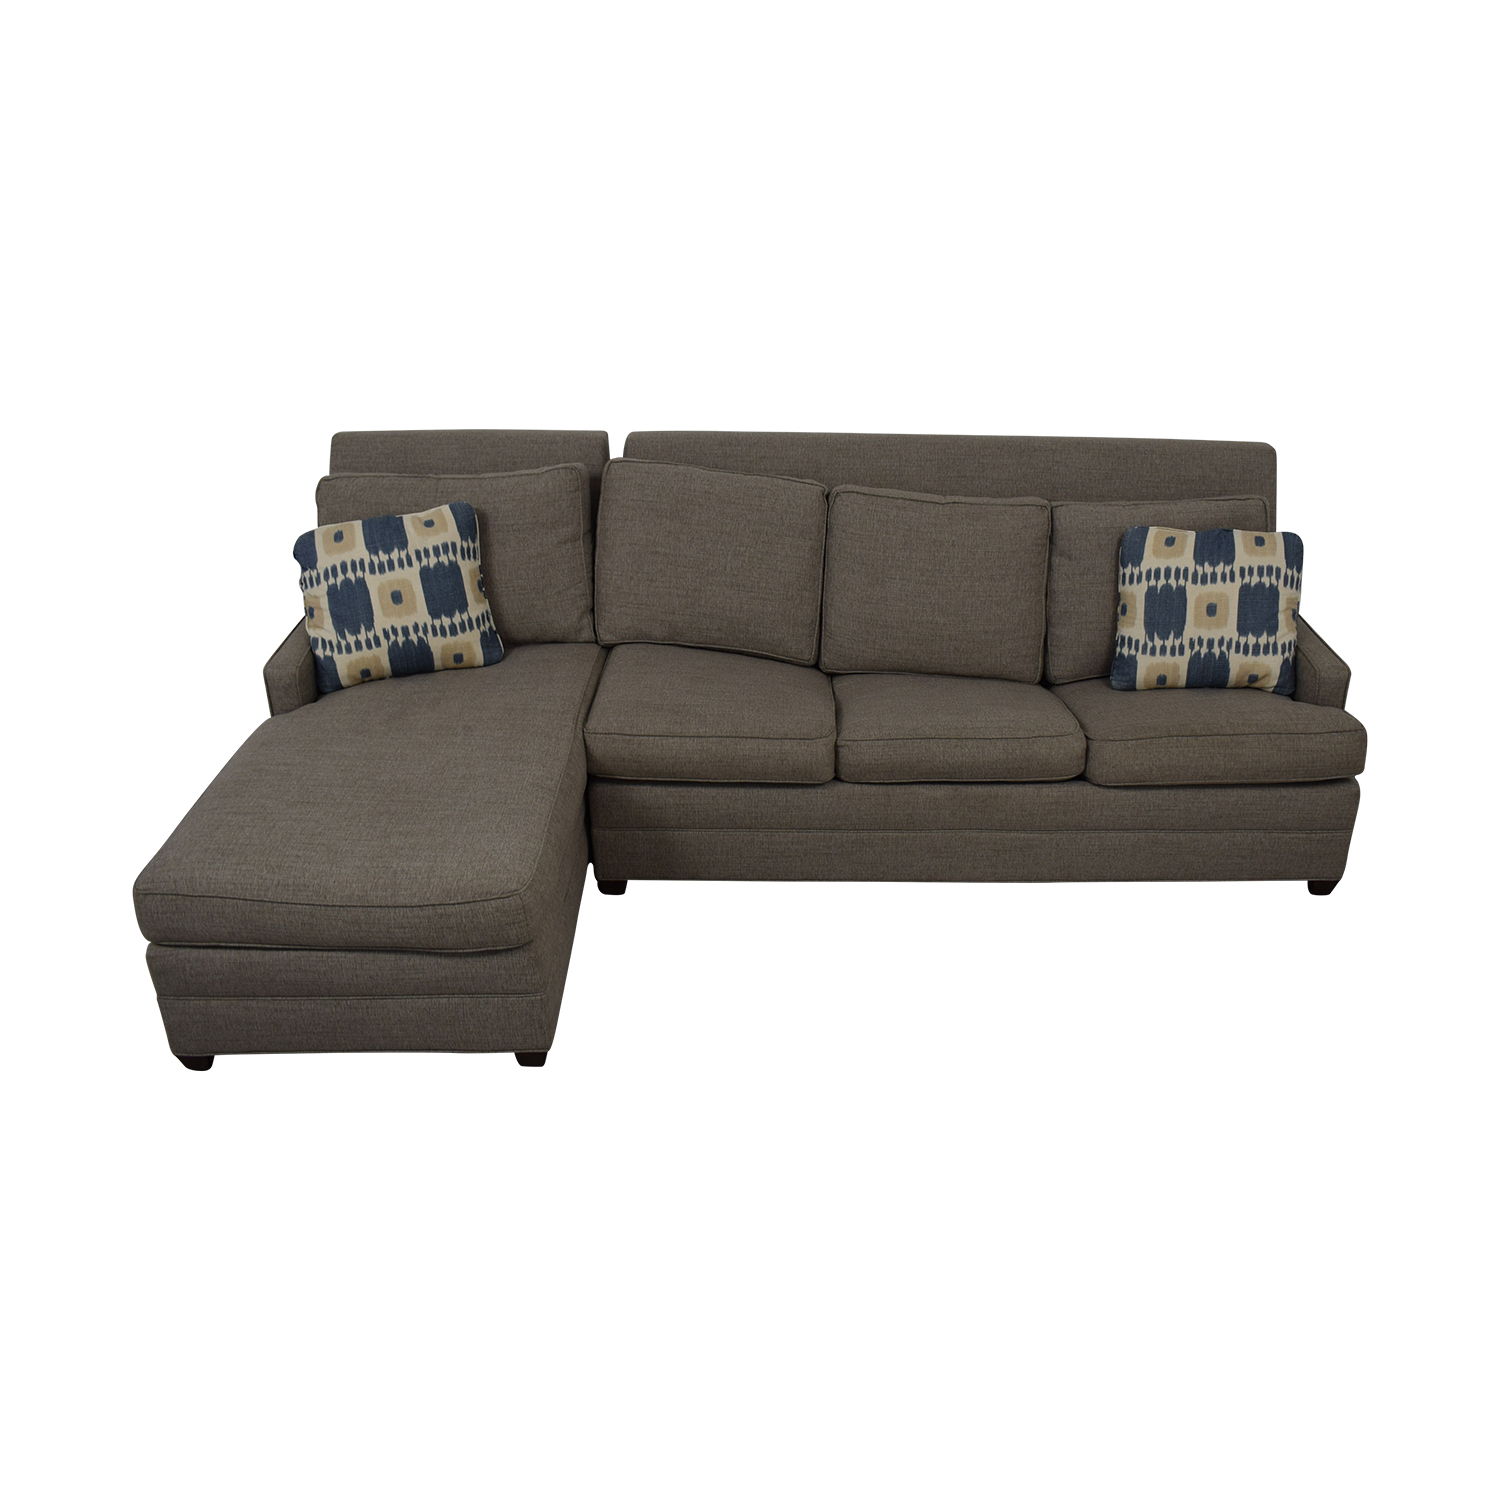 Vanguard Furniture Vanguard Furniture Left Chaise Queen Sleeper Sofa coupon